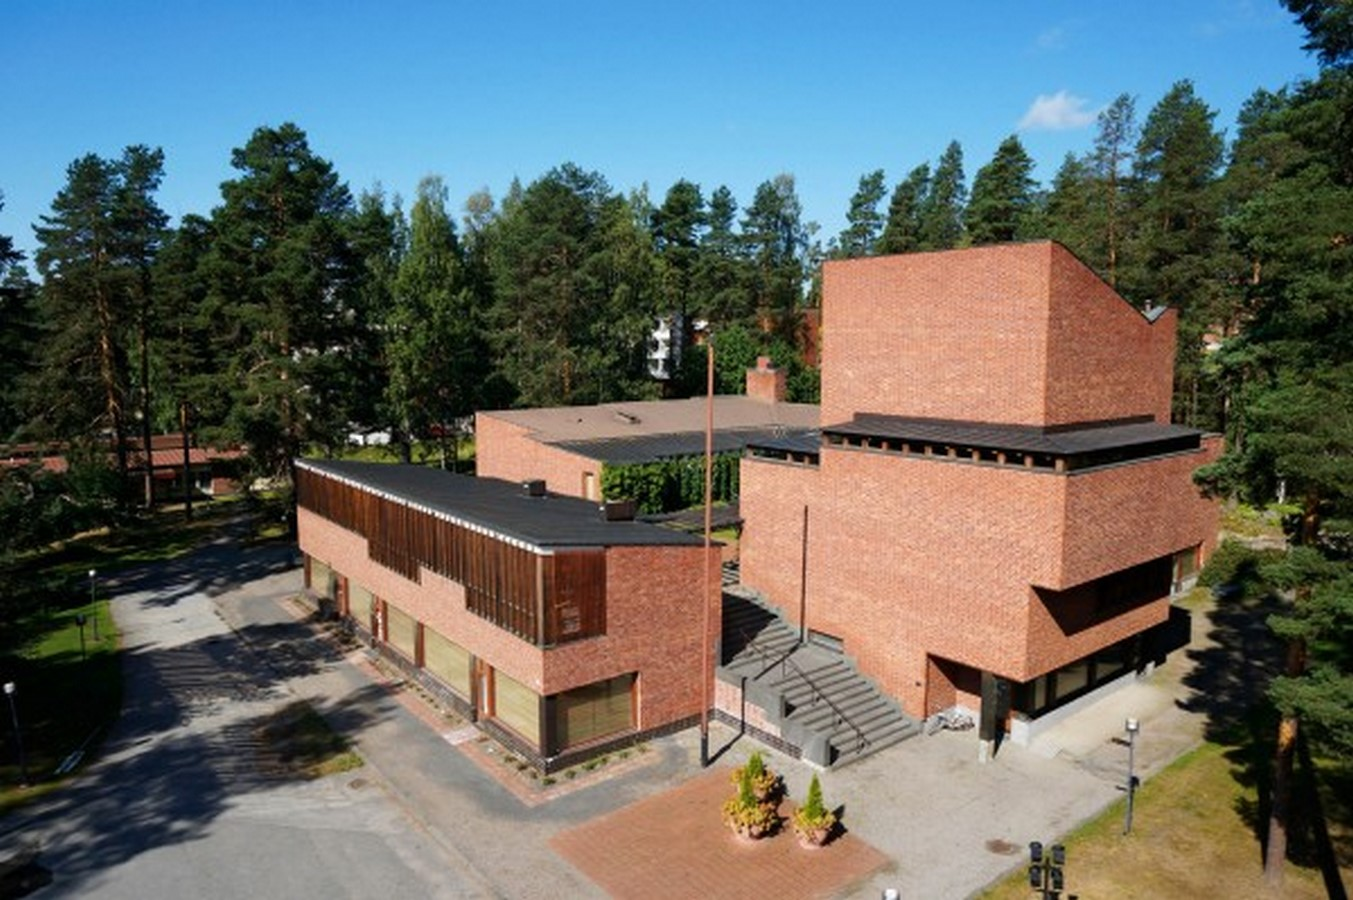 Saynatsalo Town Hall by Alvar Aalto: Collaboration in Architecture - Sheet1